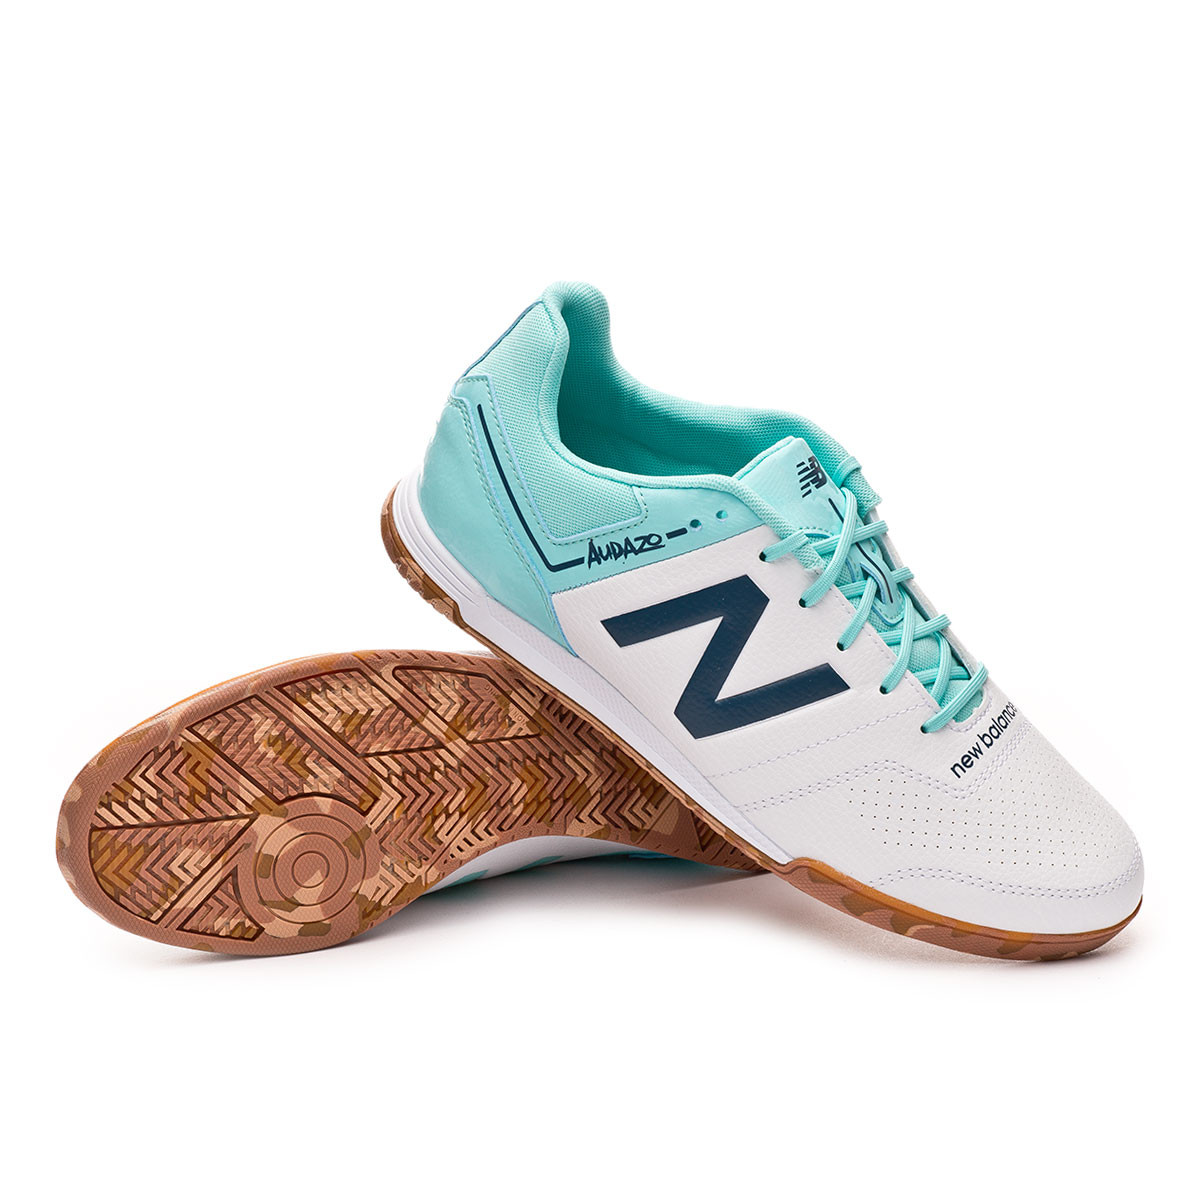 Zapatilla Audazo Strike 3.0 Futsal White Light blue